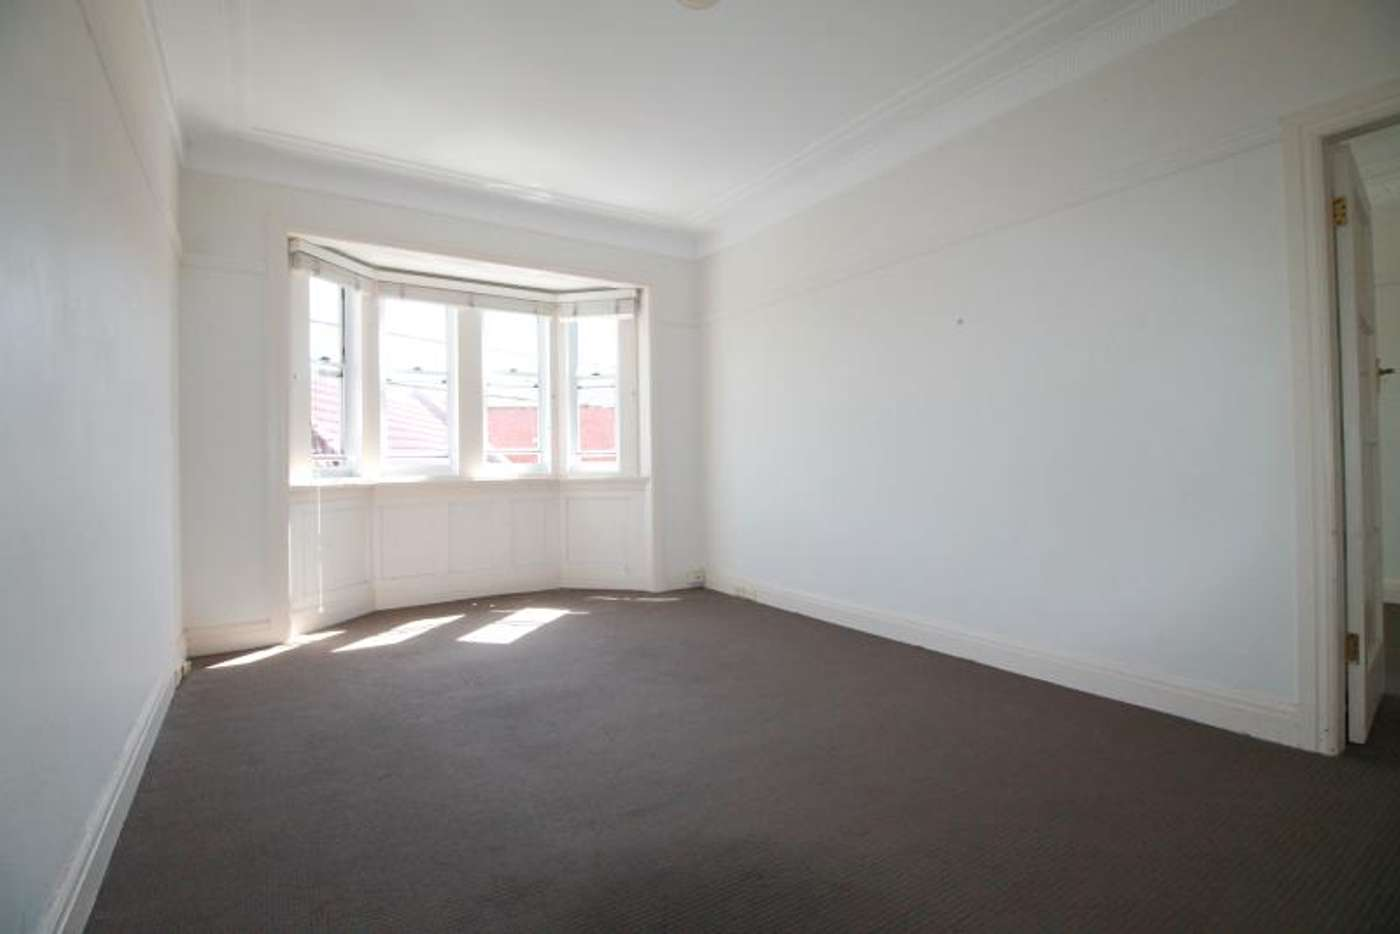 Main view of Homely apartment listing, 5/71 Arthur Street, Randwick NSW 2031